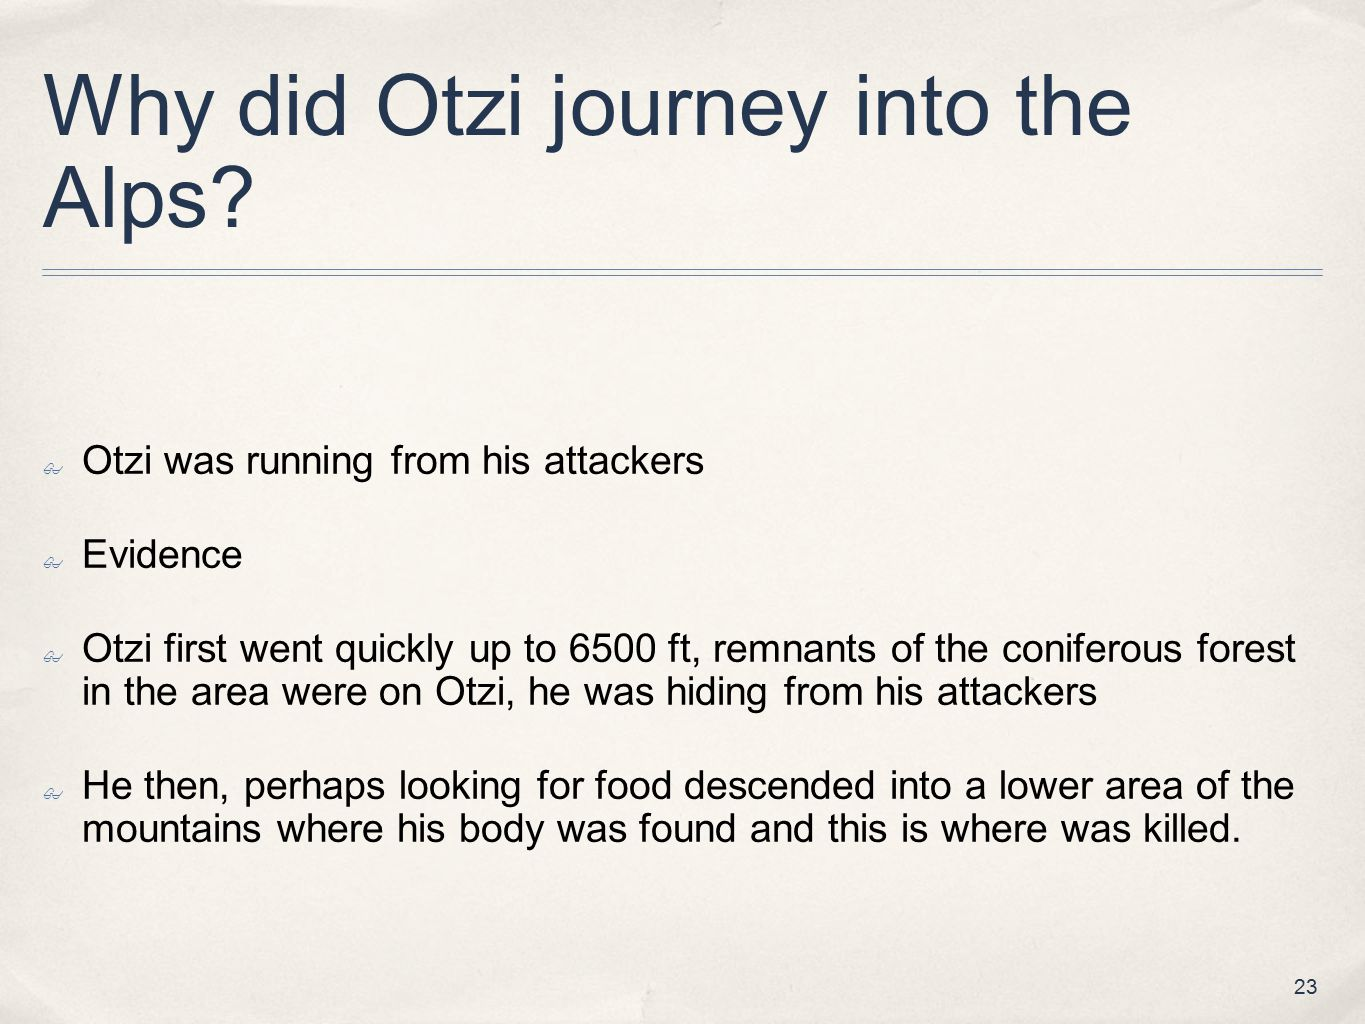 Why did Otzi journey into the Alps